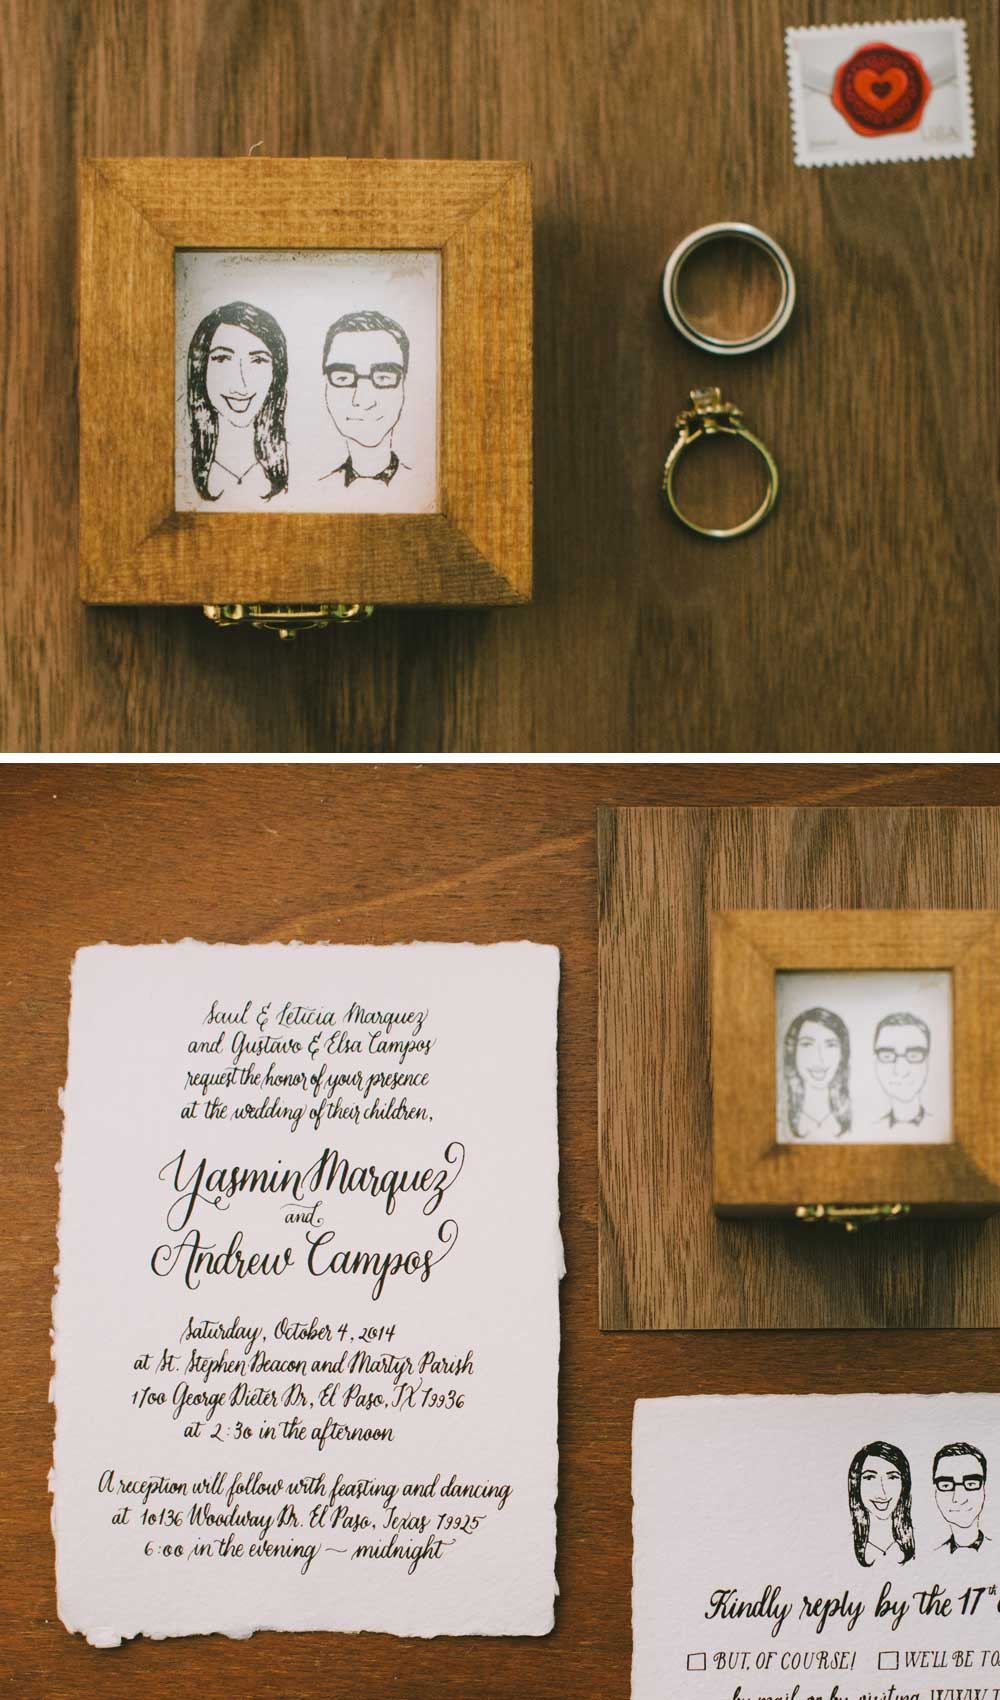 Andrew-Yasmin-Wedding-Invitations-via-Happy-Hands-Project